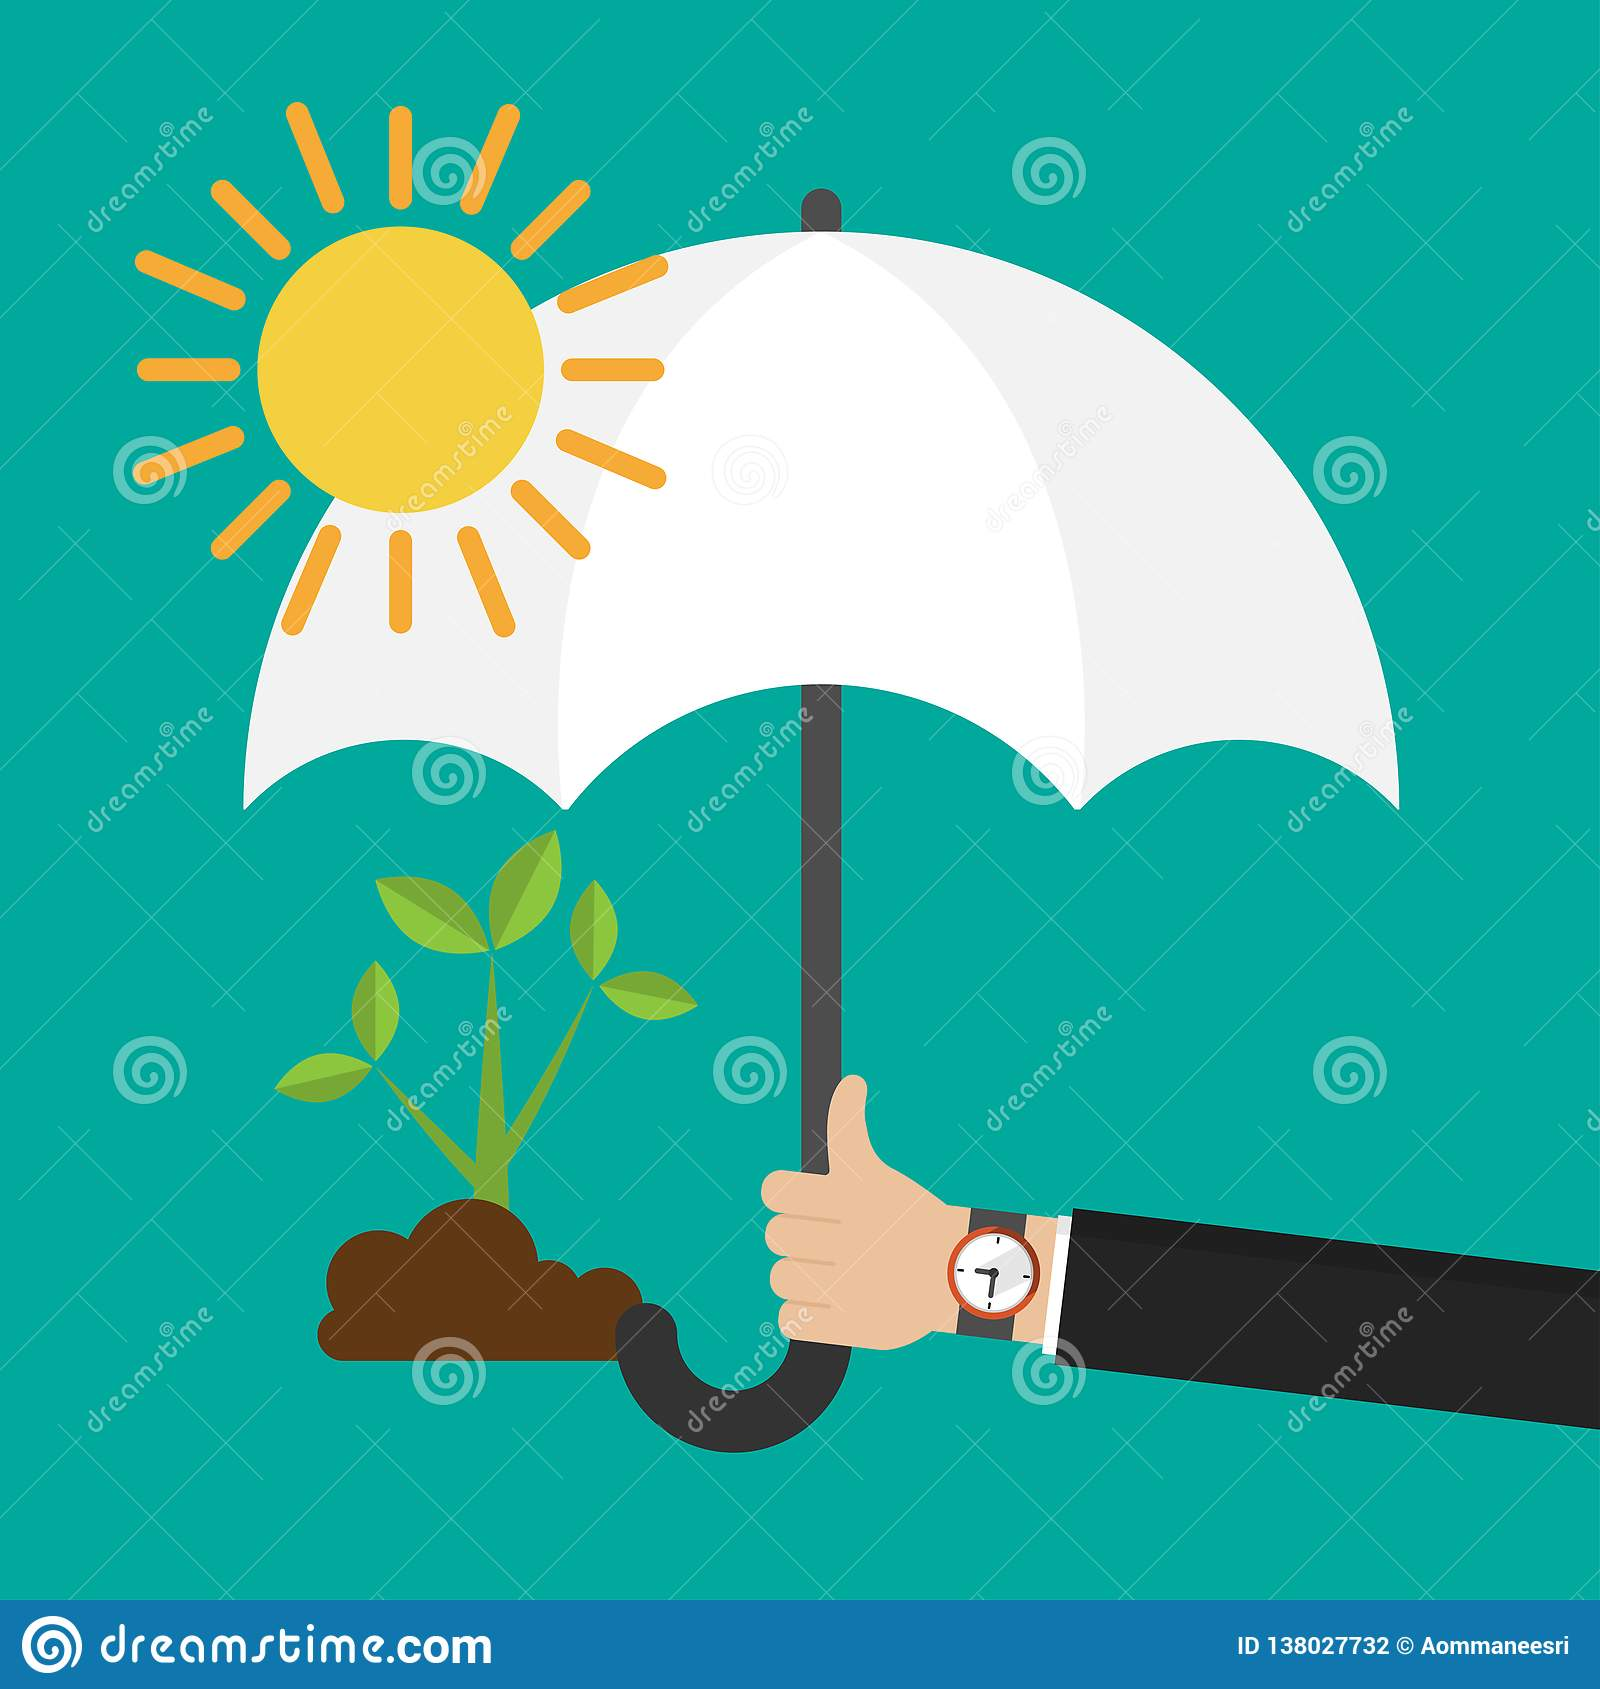 Businessman`s hand holding an umbrella for protecting seedling from the sun icon flat design